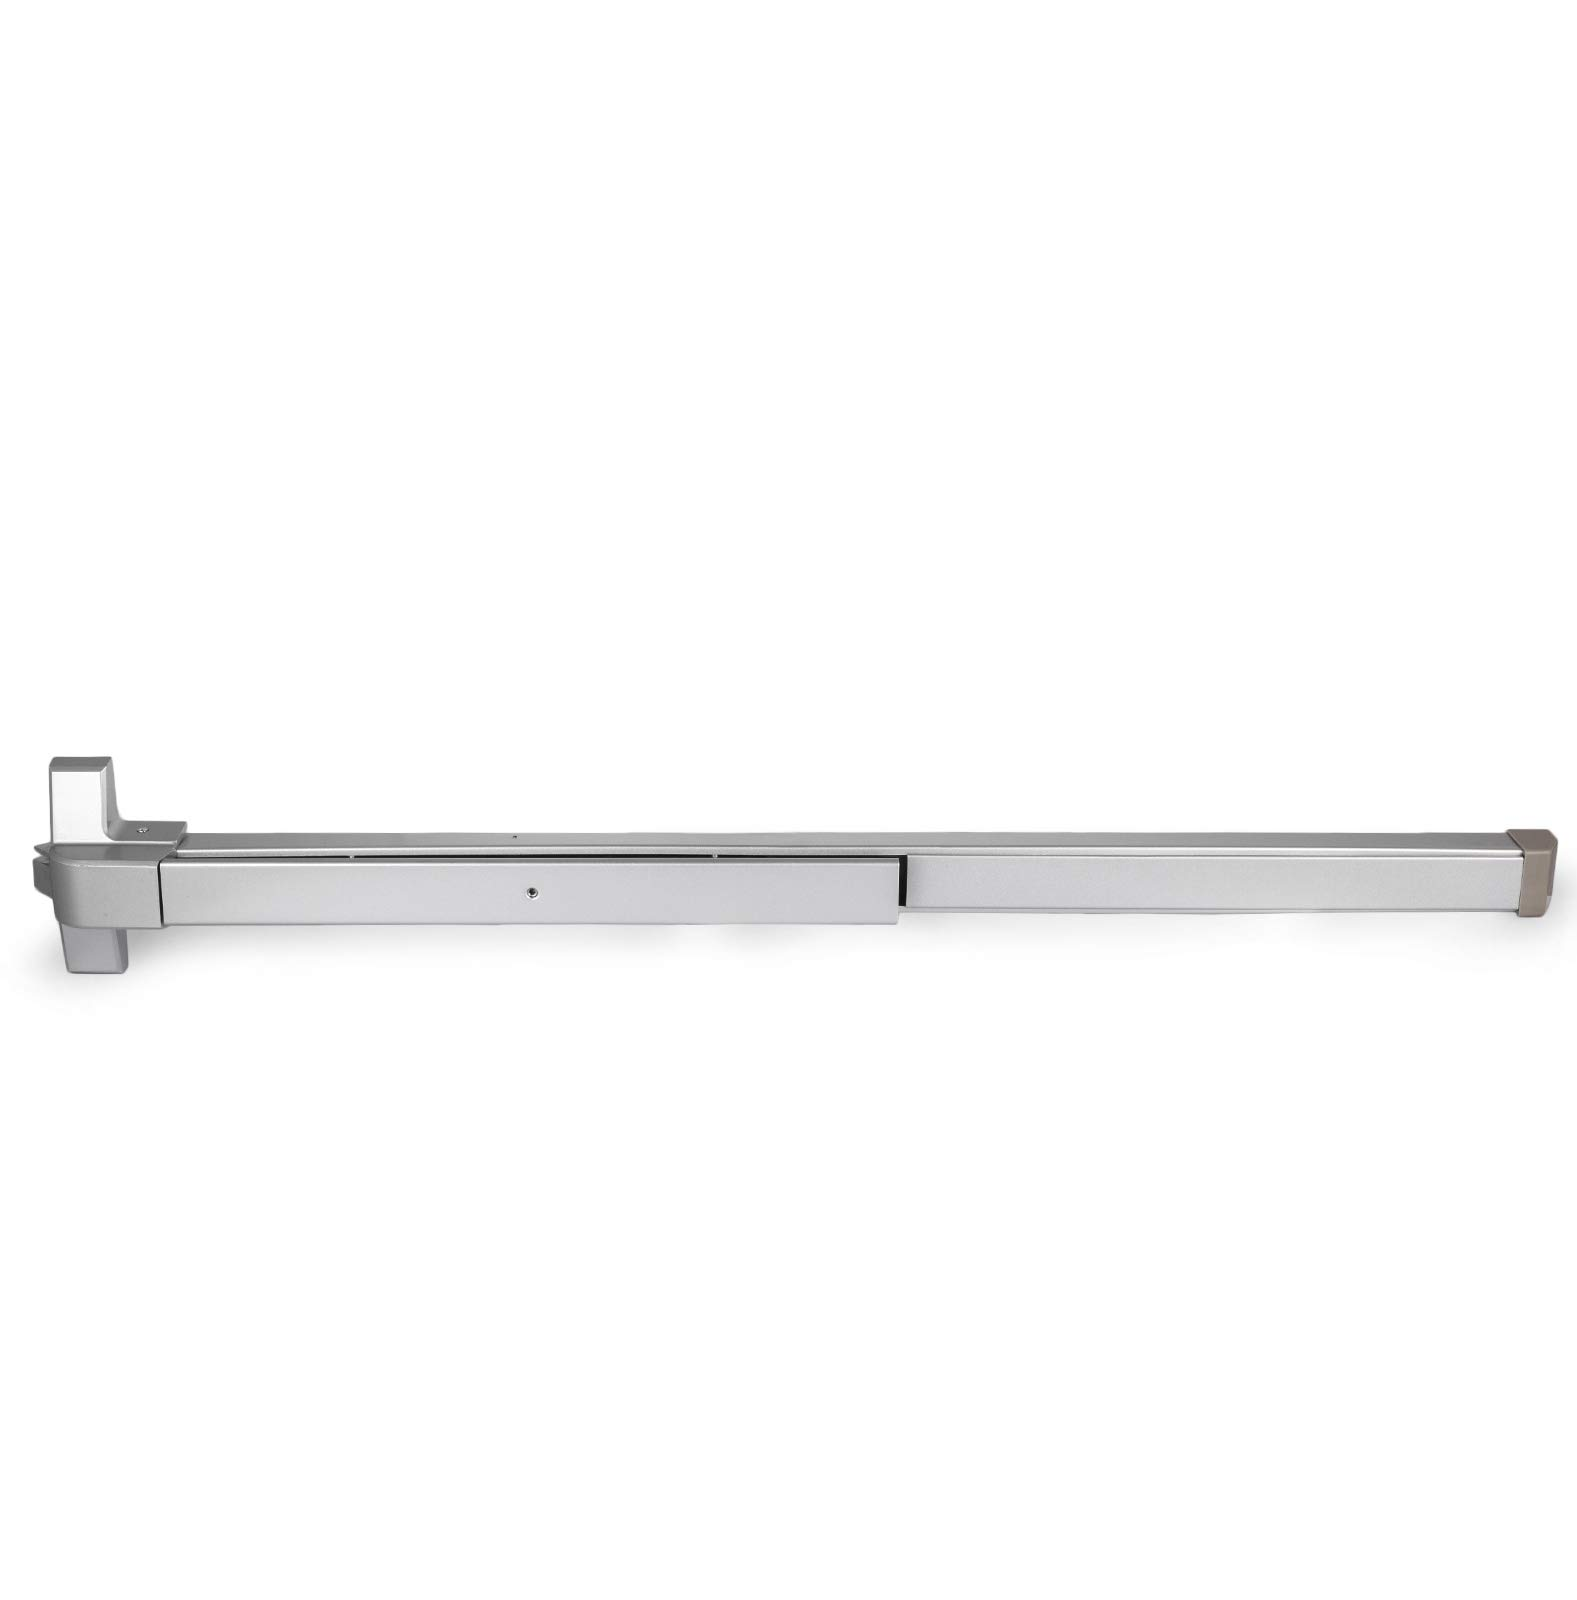 Happybuy Door Push Bar Panic Exit Device with Dogging Key and Exterior Lever Commercial Emergency Exit Bar Panic Exit Device for Wood Metal Door Panic Exit Bar (Push bar with Dogging Key and Lever) by Happybuy (Image #6)